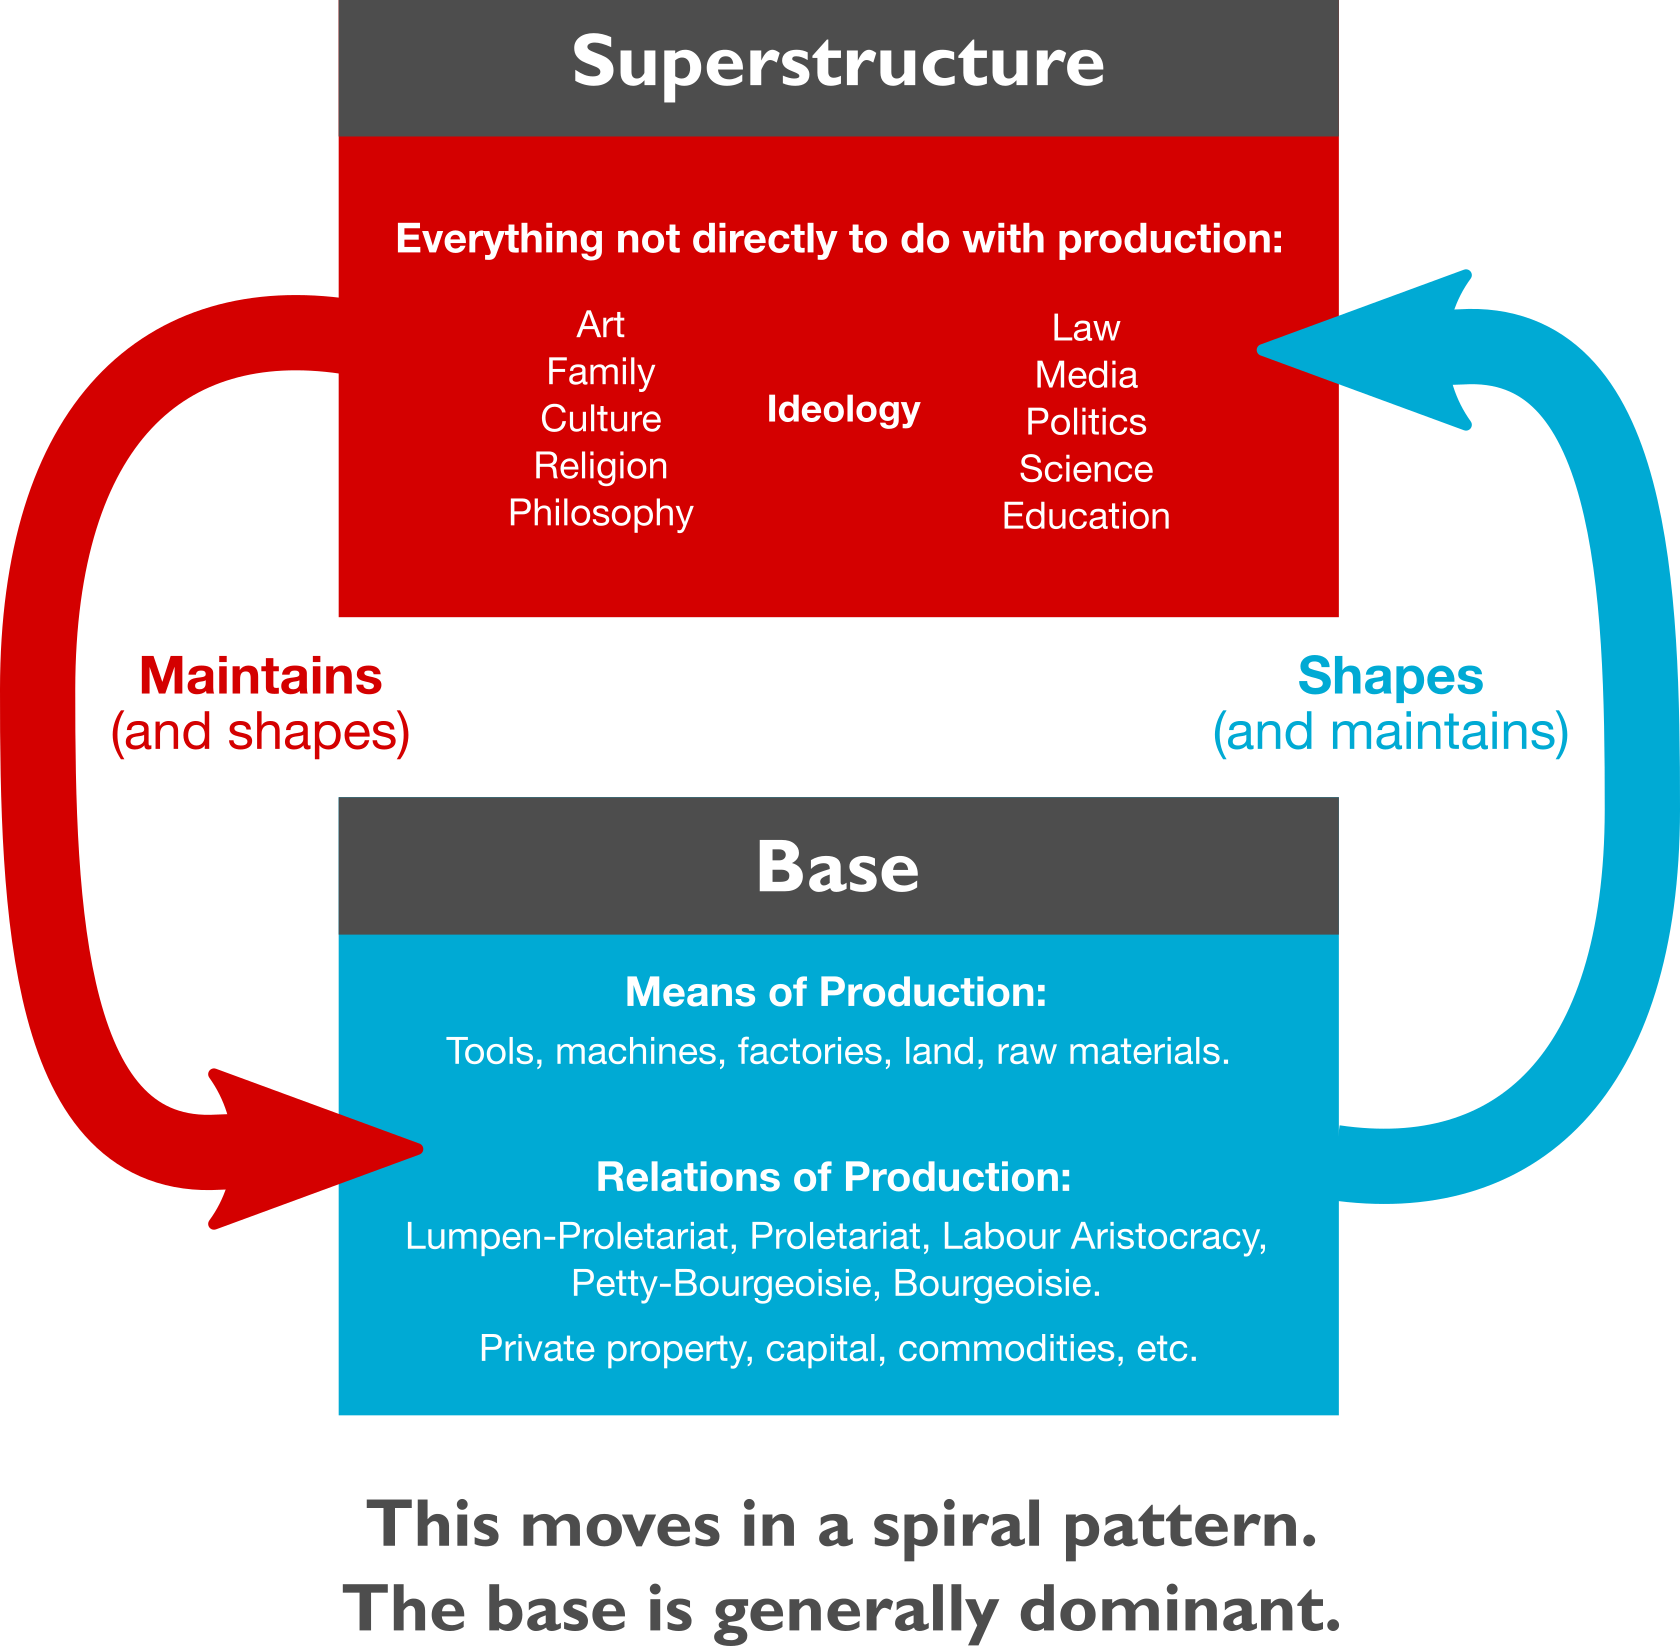 Superstructure and base